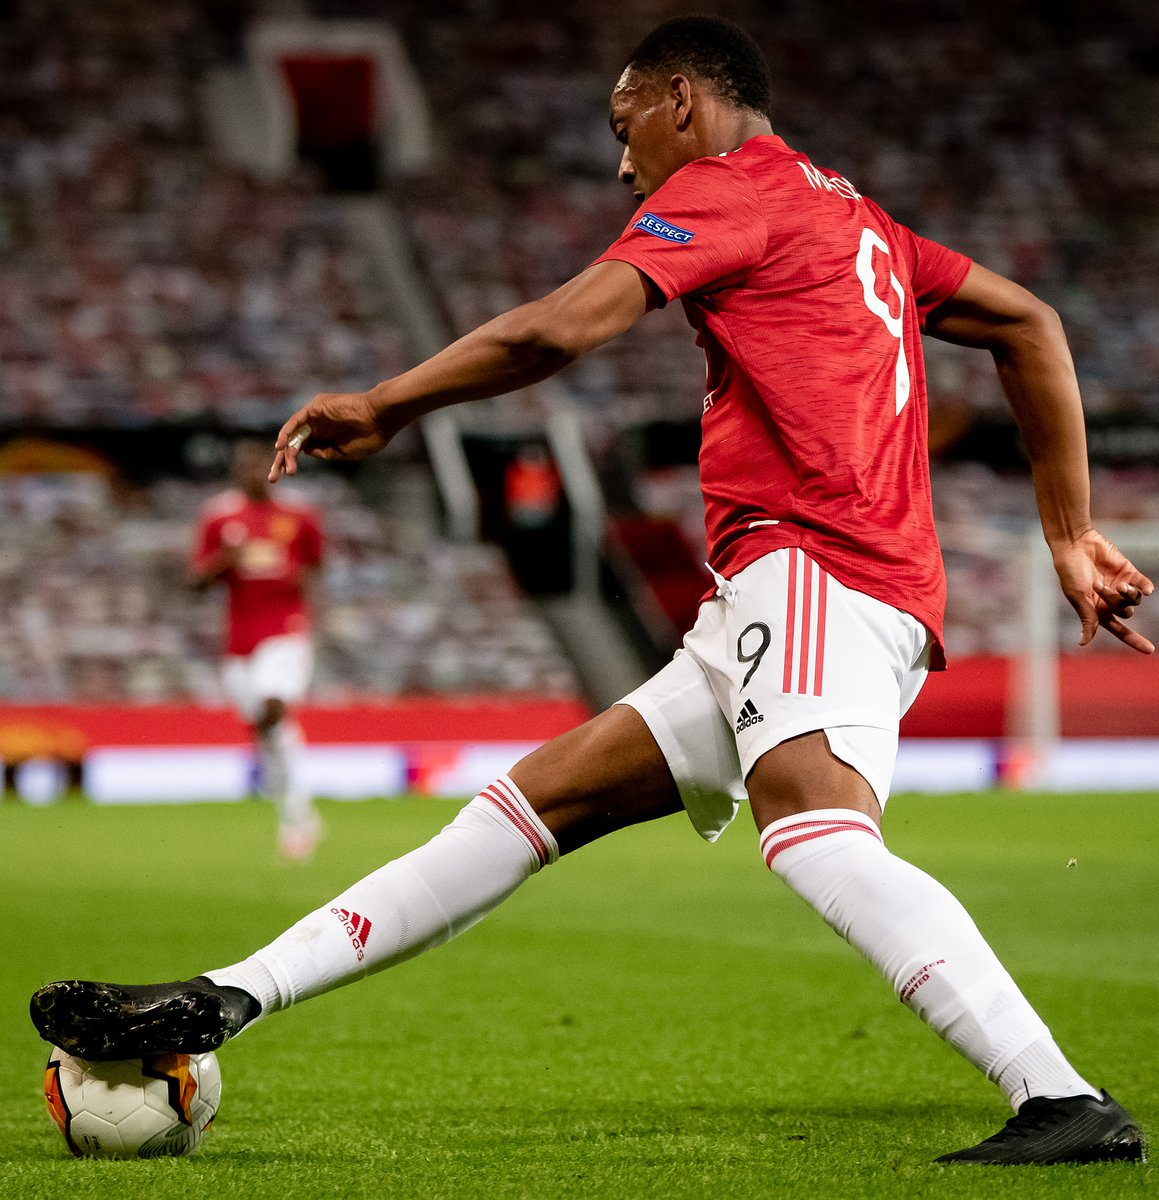 Martial FC, where you at? 😏🥶 #MUFC @AnthonyMartial